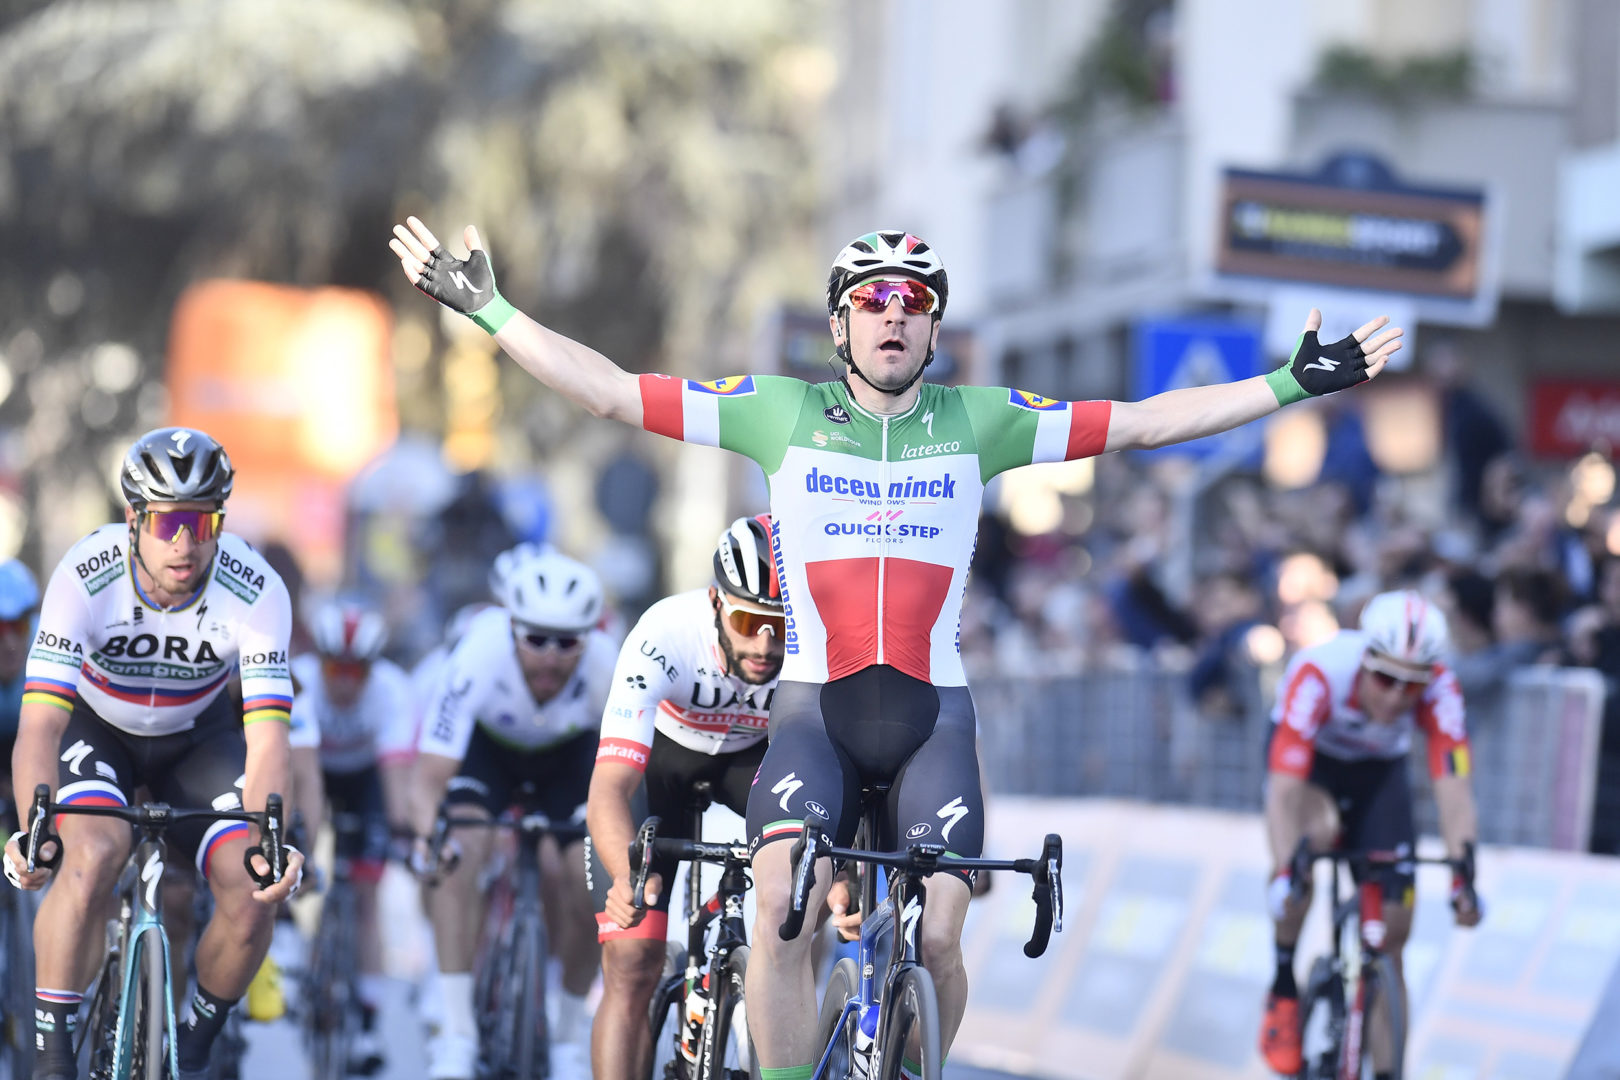 Foto LaPresse/Fabio Ferrari 15/03/2019 Pomarance (Italia) Sport Ciclismo Tirreno-Adriatico 2019 - edizione 54 - da Pomarance a Foligno  (226 km) Nella foto: durante la gara.Photo LaPresse/Fabio Ferrari March 15, 2018 Pomarance (Italy) Sport Cycling Tirreno-Adriatico 2019 - edition 54 - Pomarance to Foligno (140 miglia) In the pic: during the race.